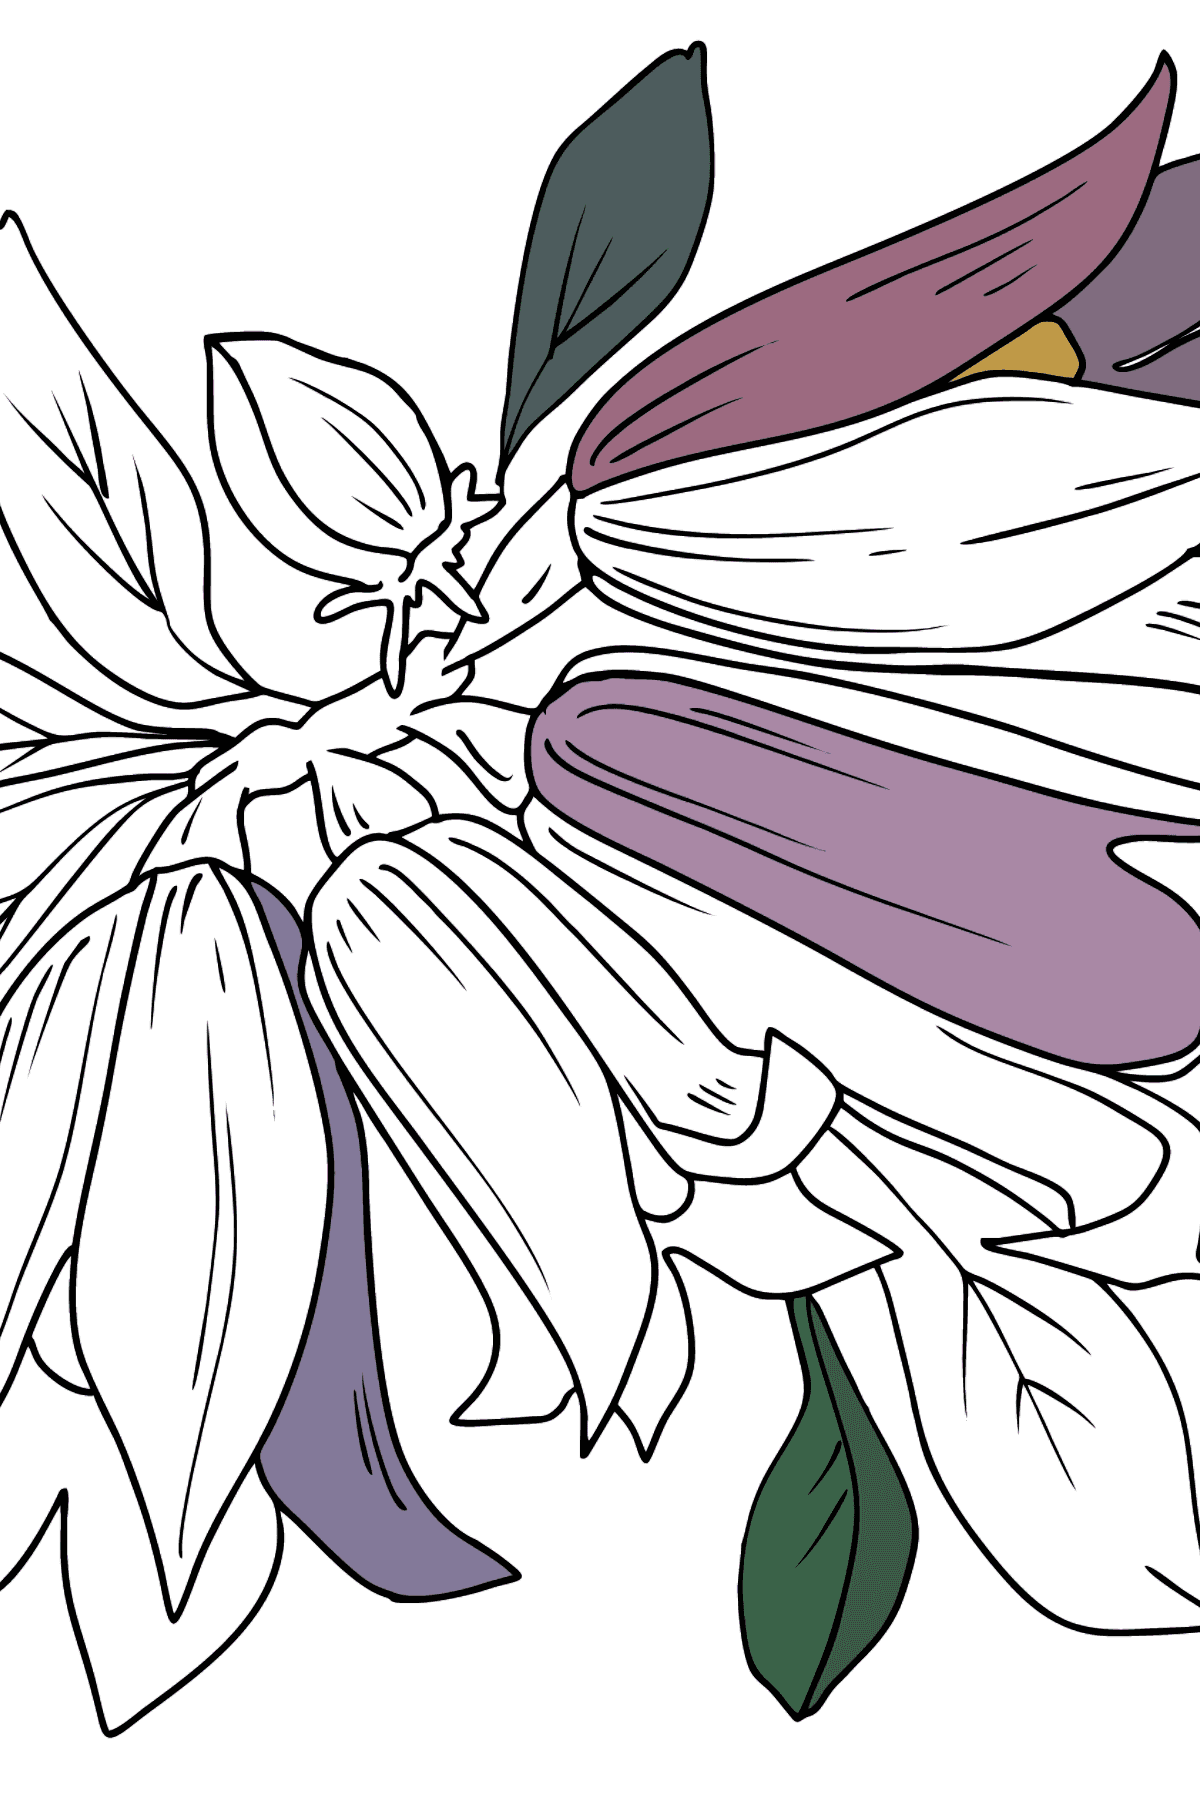 Flower Coloring Page - Bells - Coloring Pages for Kids